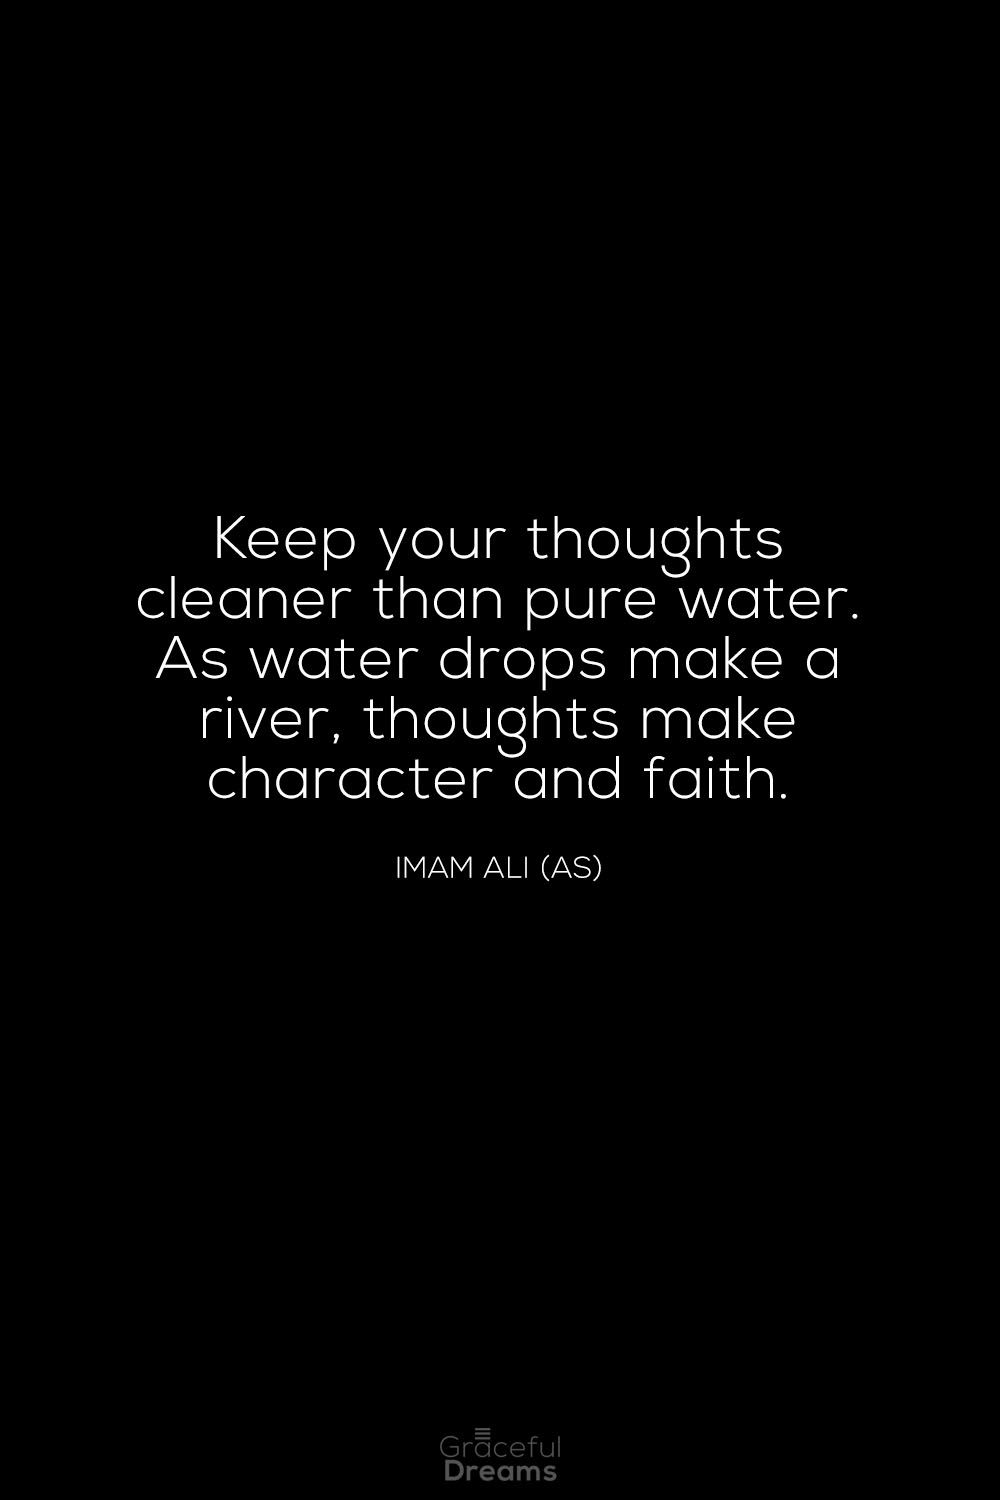 Imam Ali (AS)  Inspirational Quotes in 9  Islamic quotes